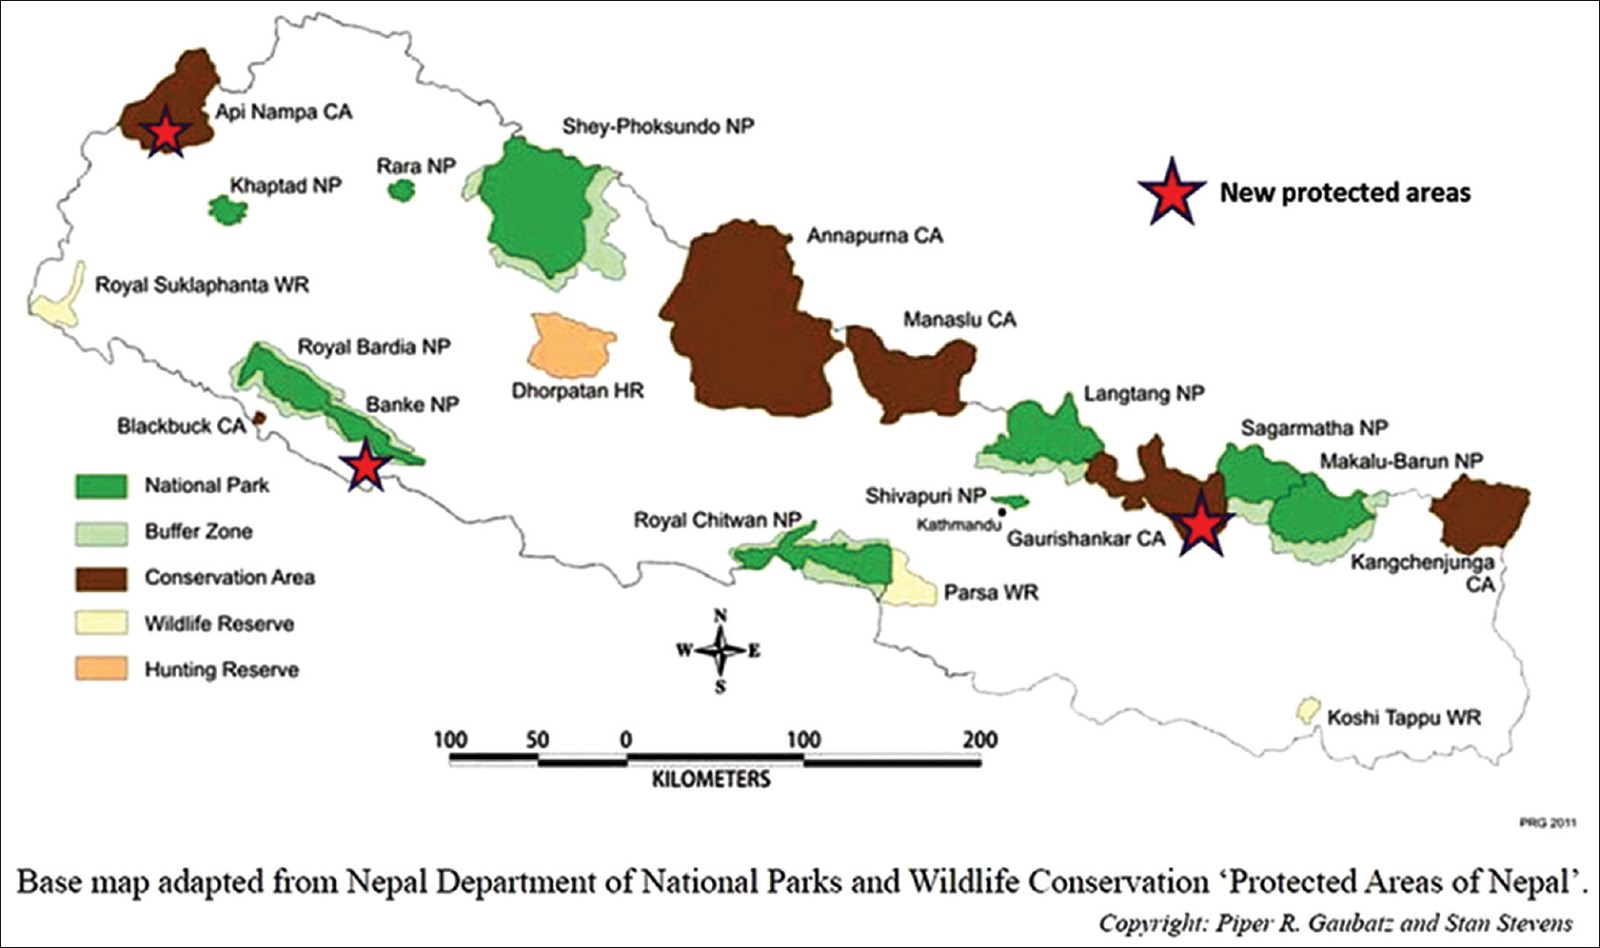 List of protected areas in summary of Nepal